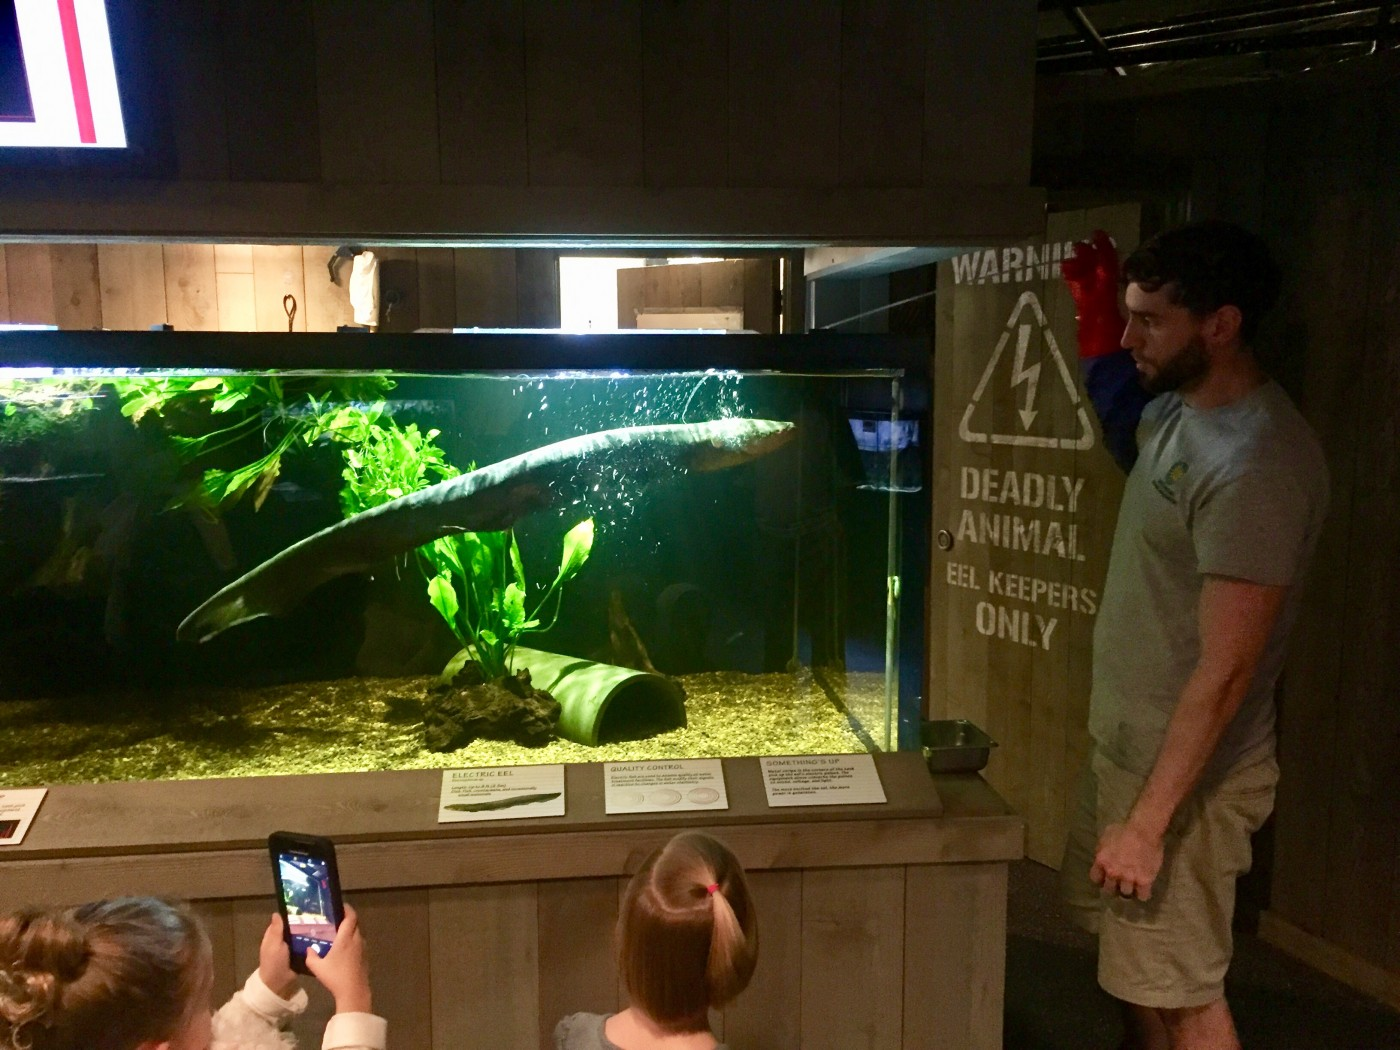 A zookeeper gives a public demonstration with the electric eel